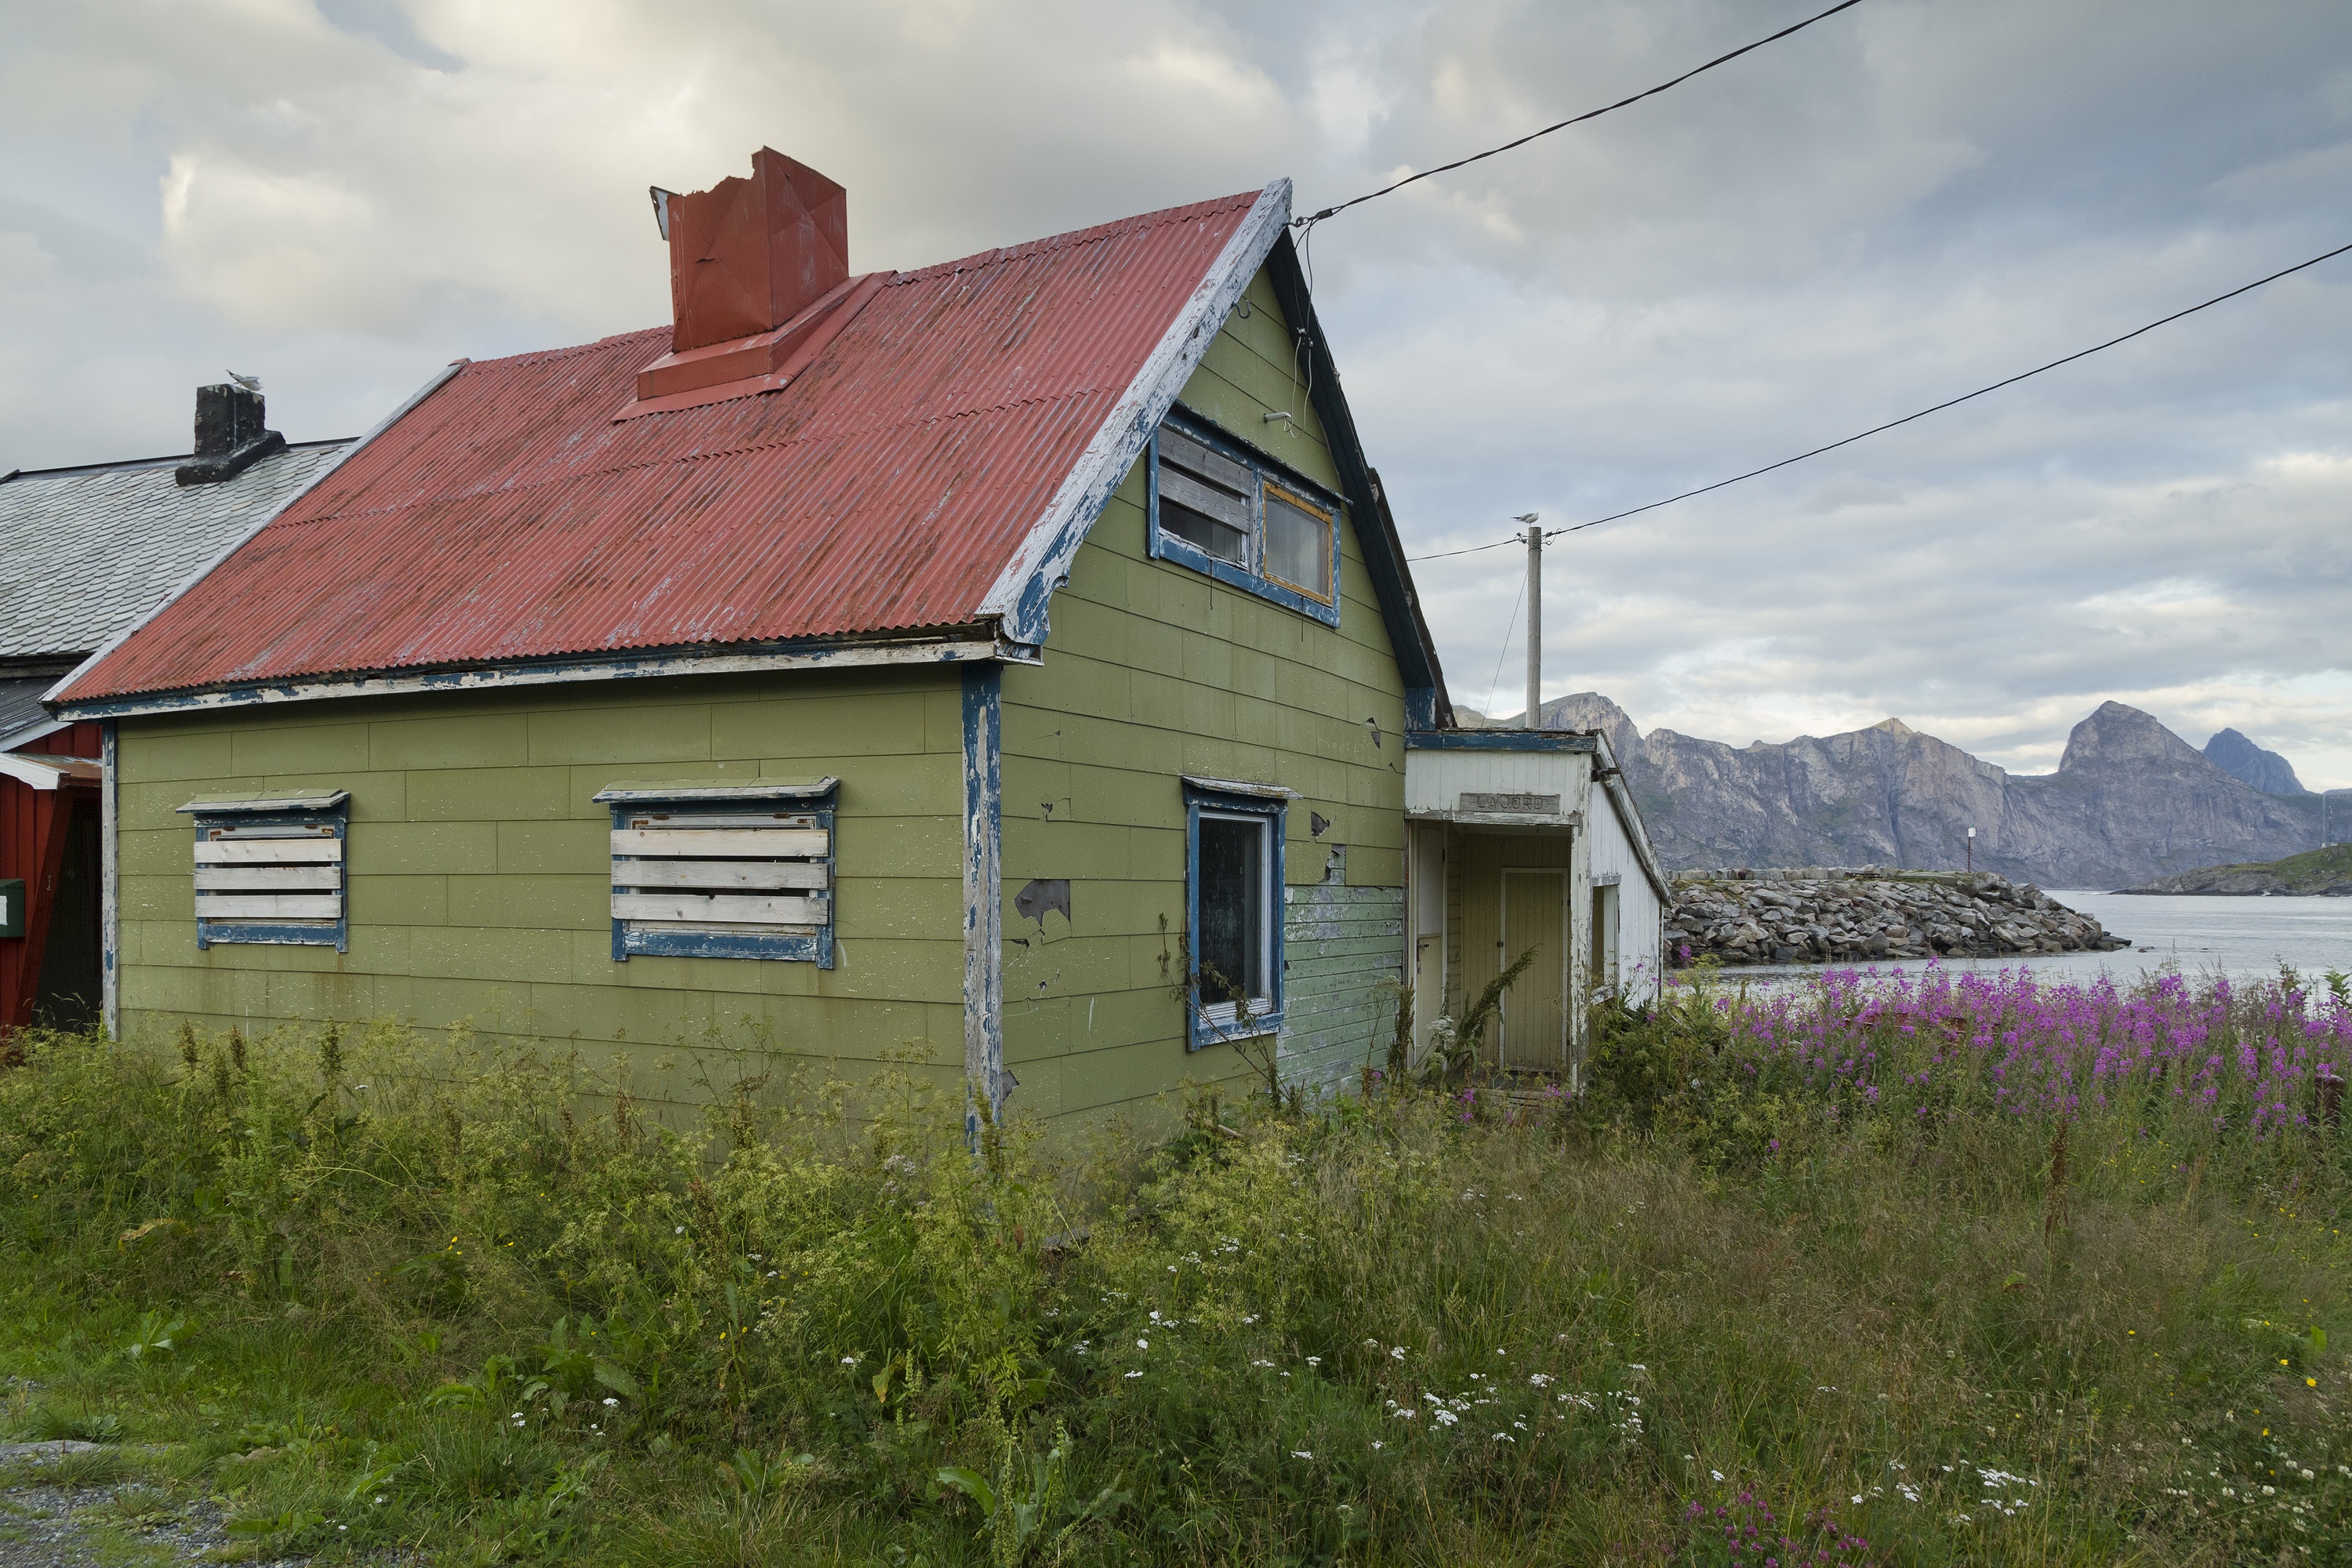 File:An abandoned house in Mefjordvær, Senja, Troms, Norway, 2014 ...